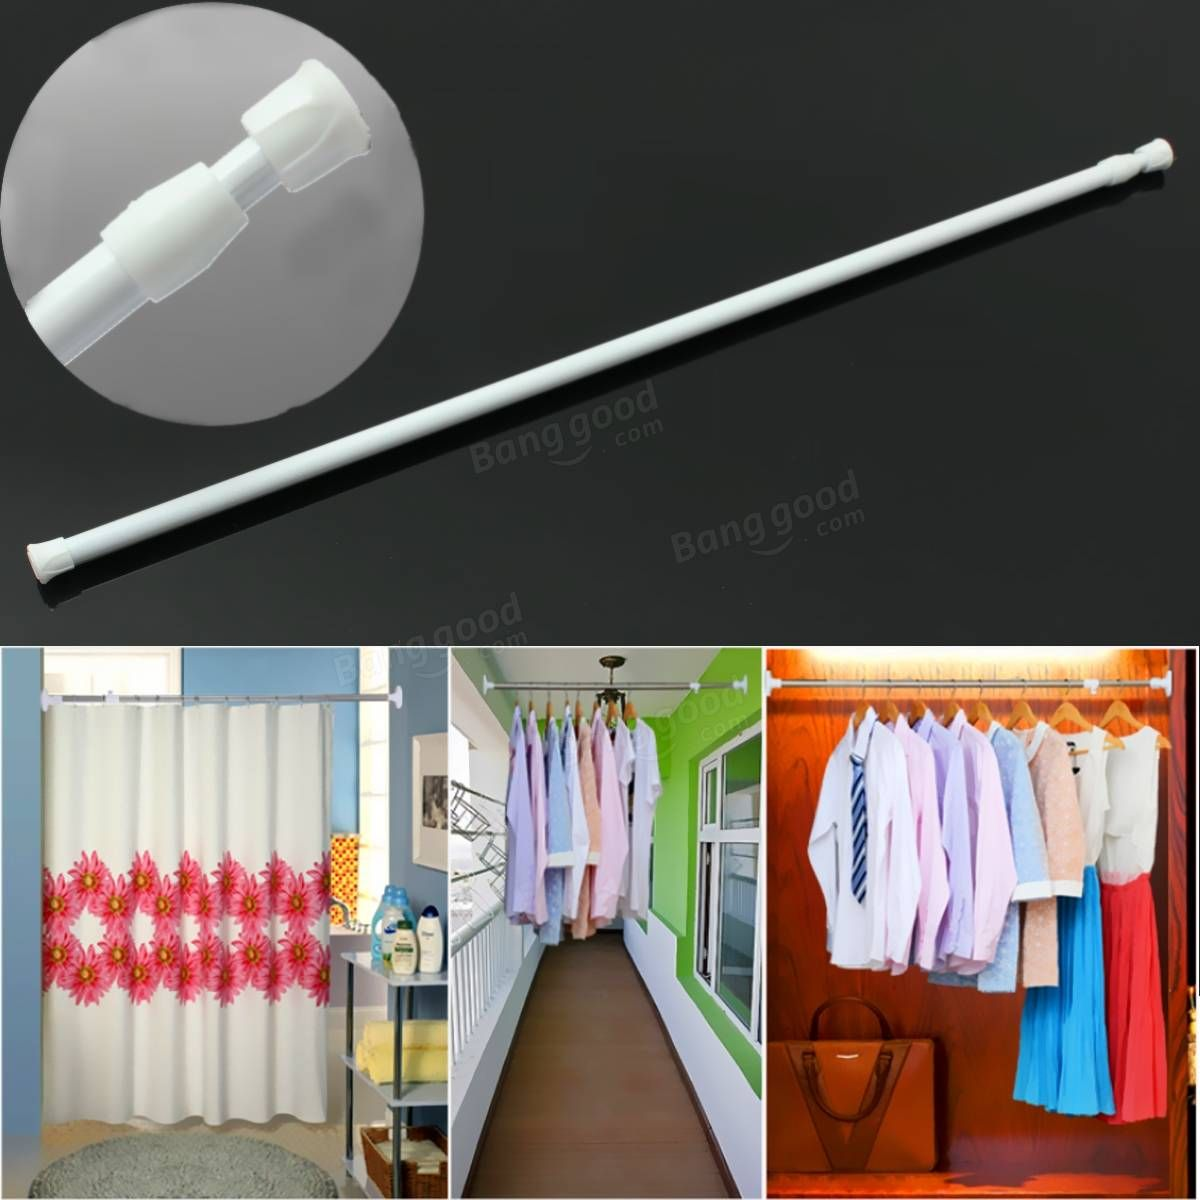 50-80cm Extendable Adjustable Spring Tension Curtain Rod